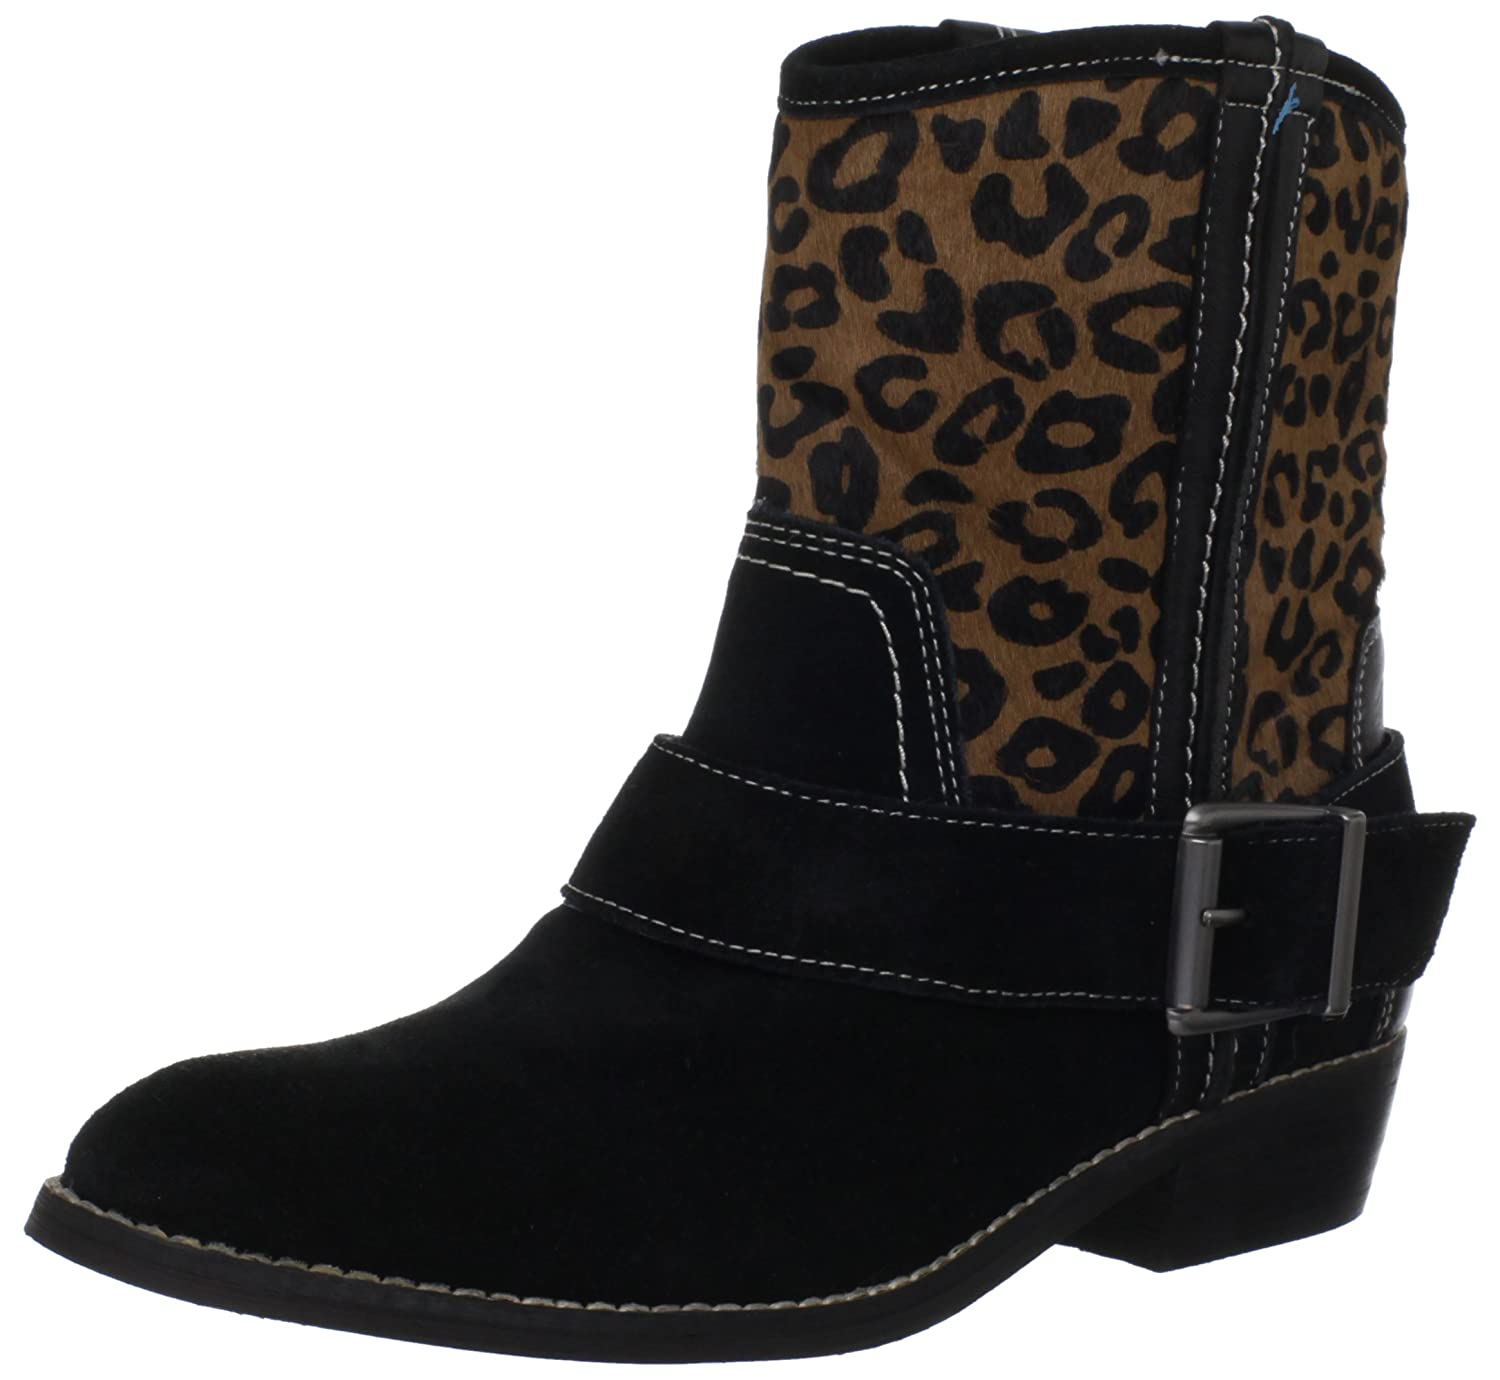 Kelsi Dagger Brooklyn Women's Tempest Ankle Boot